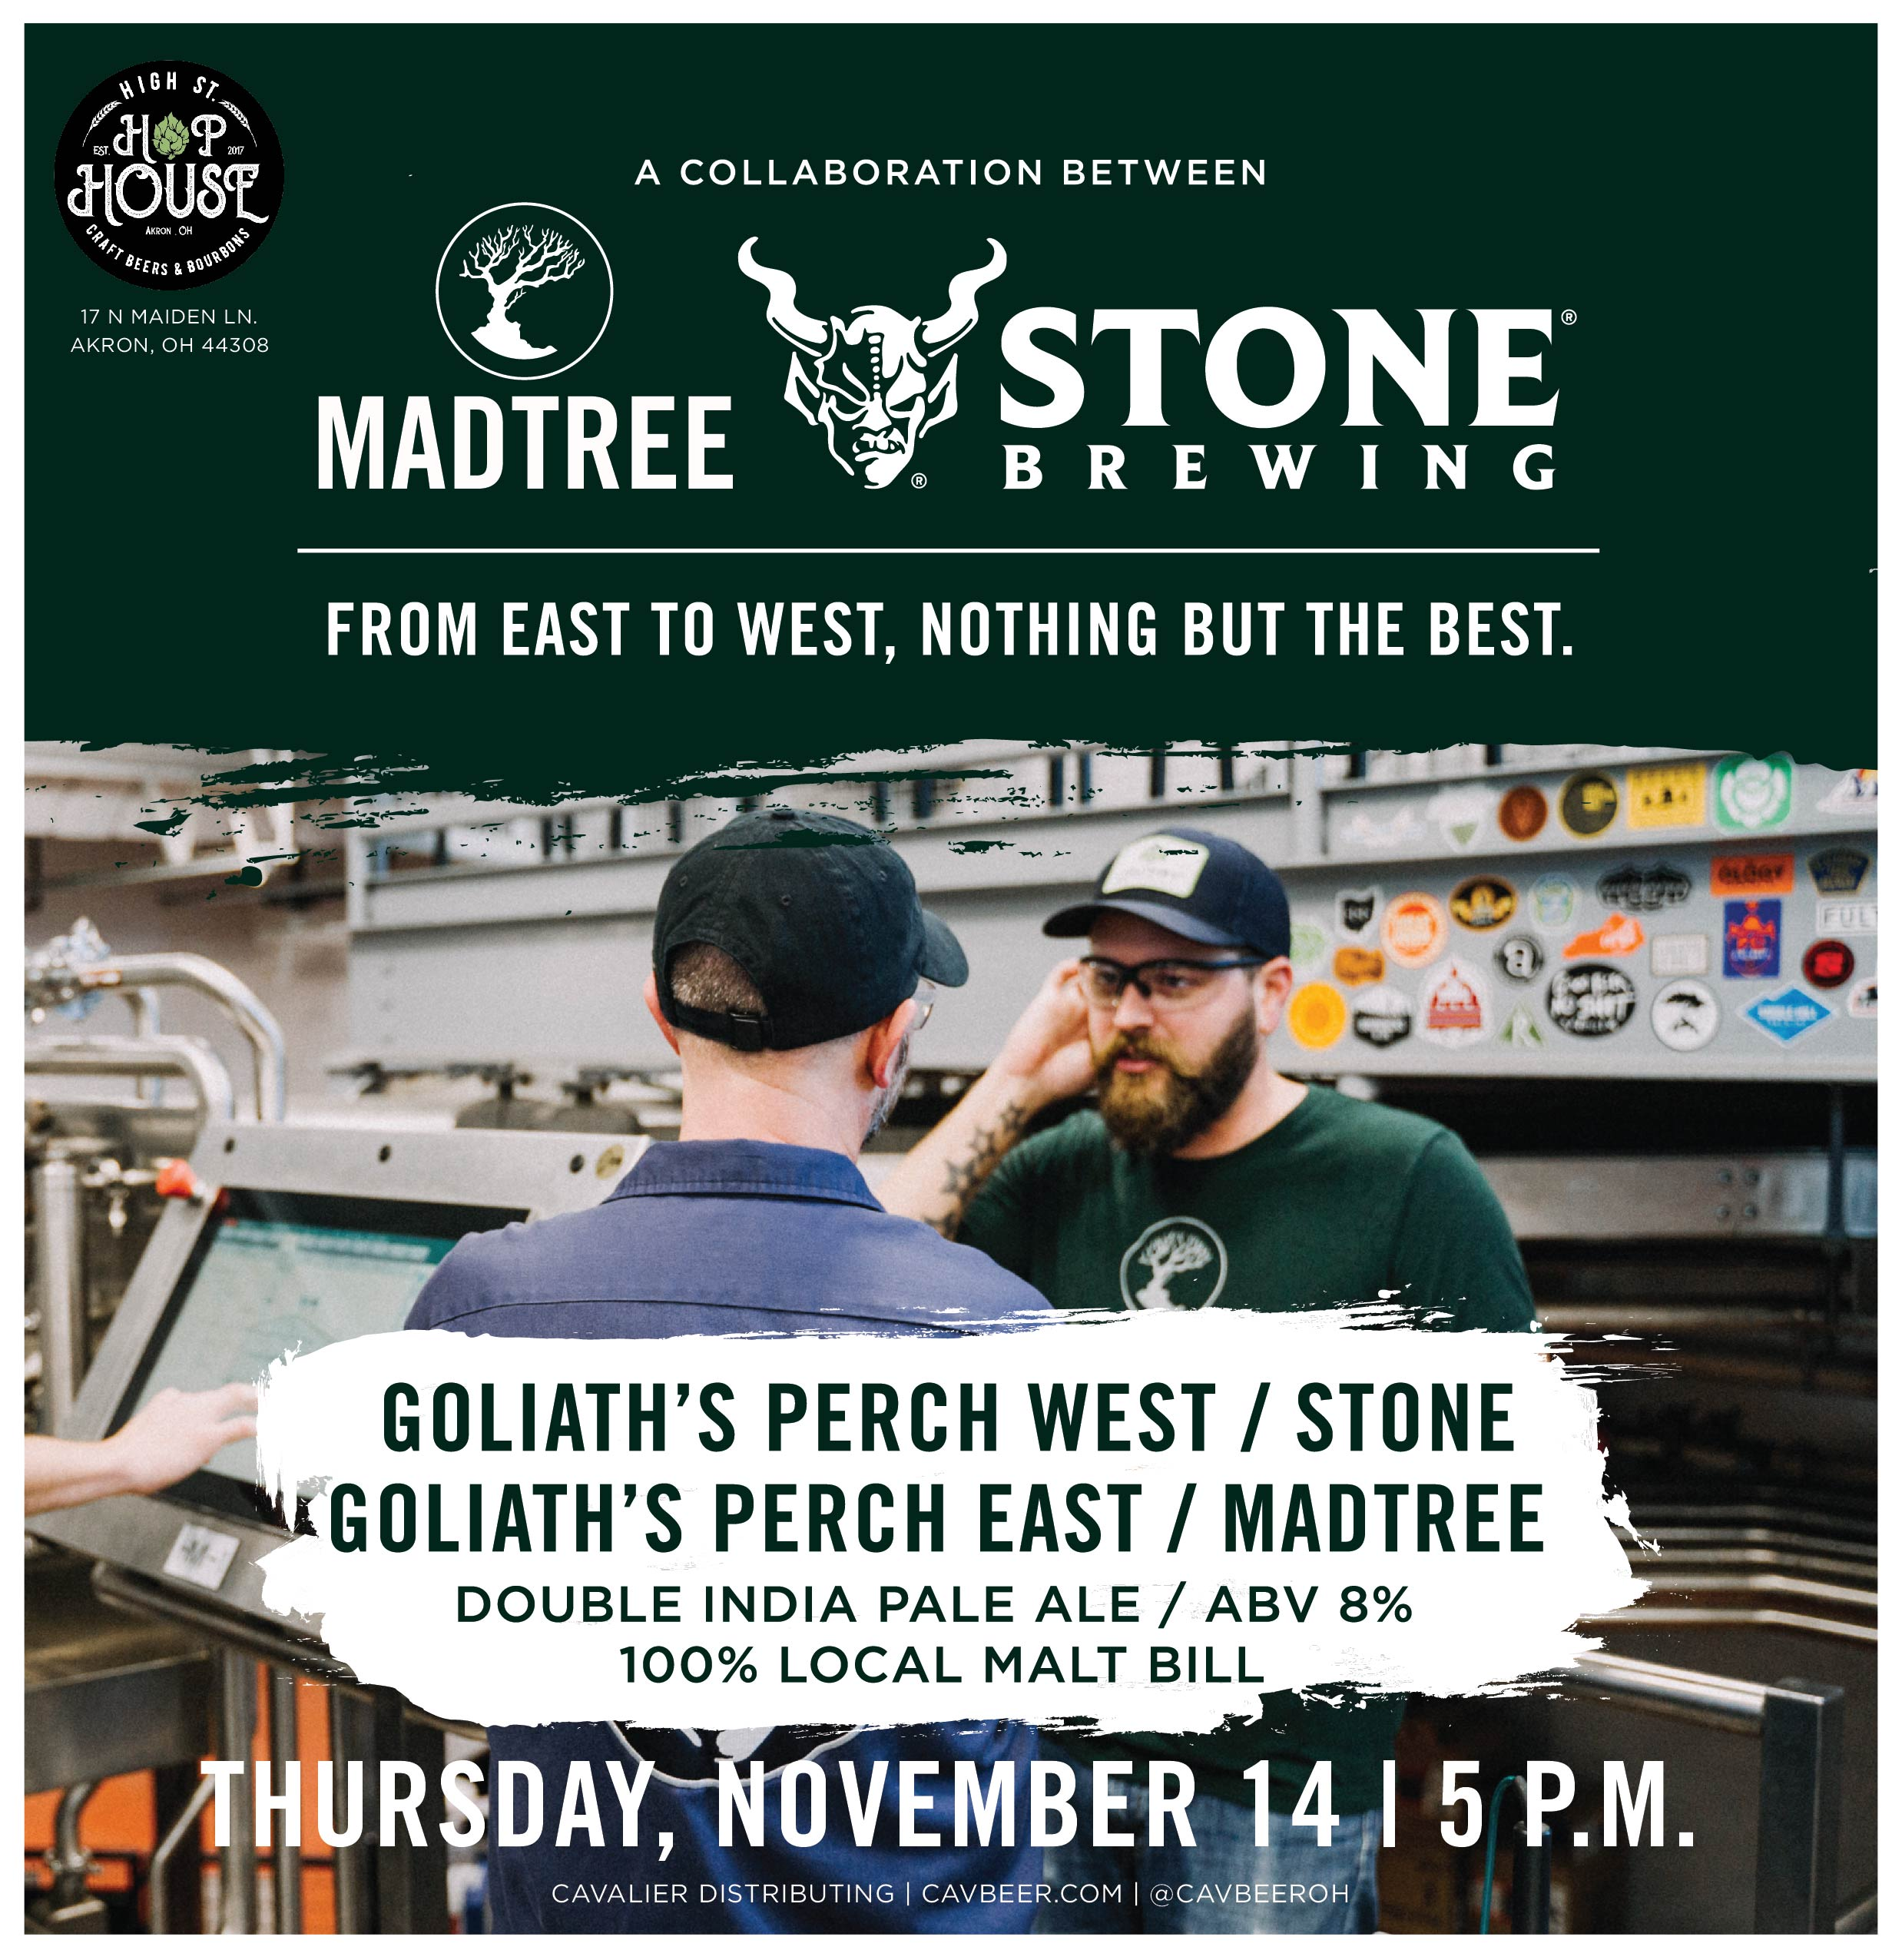 Stone Brewing & MadTree Collab @ Hop House